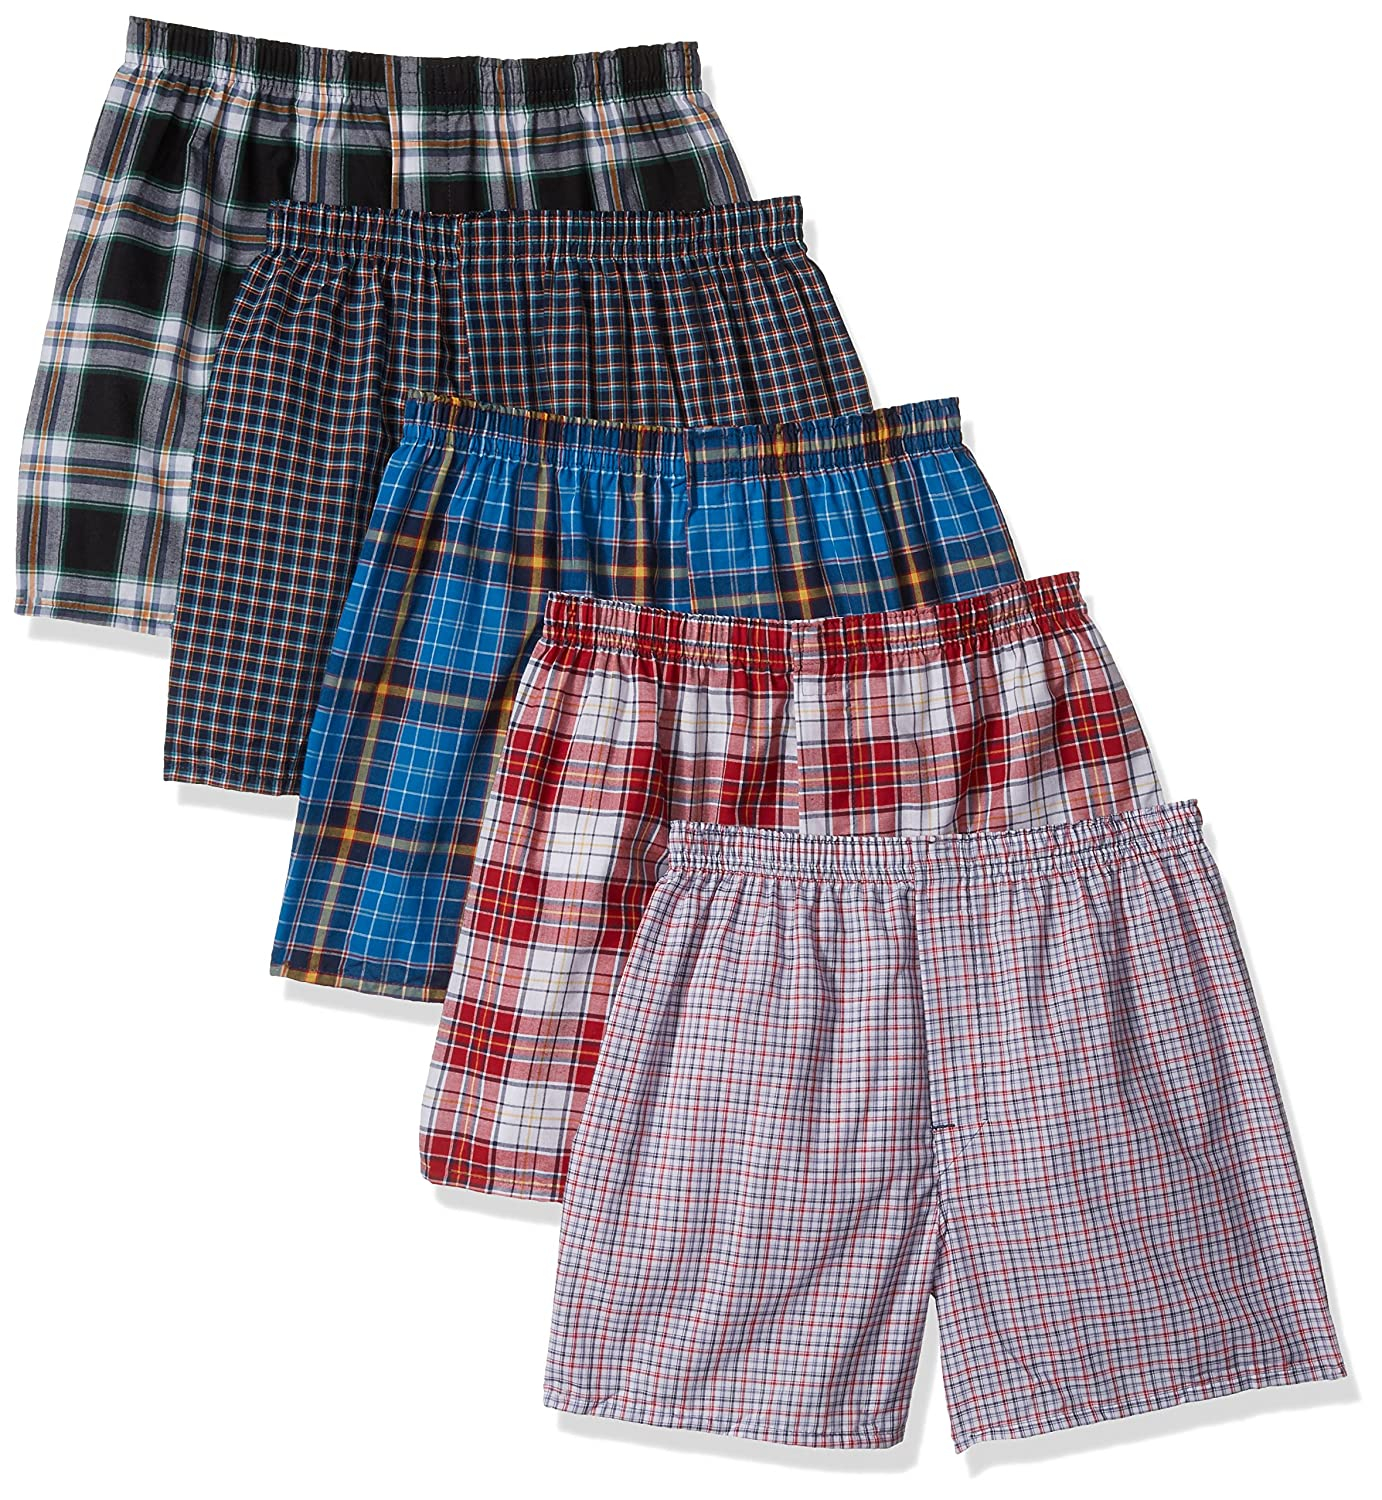 Hanes Men's 5-Pack Tartan Boxer with Inside Exposed Waistband 838BX5